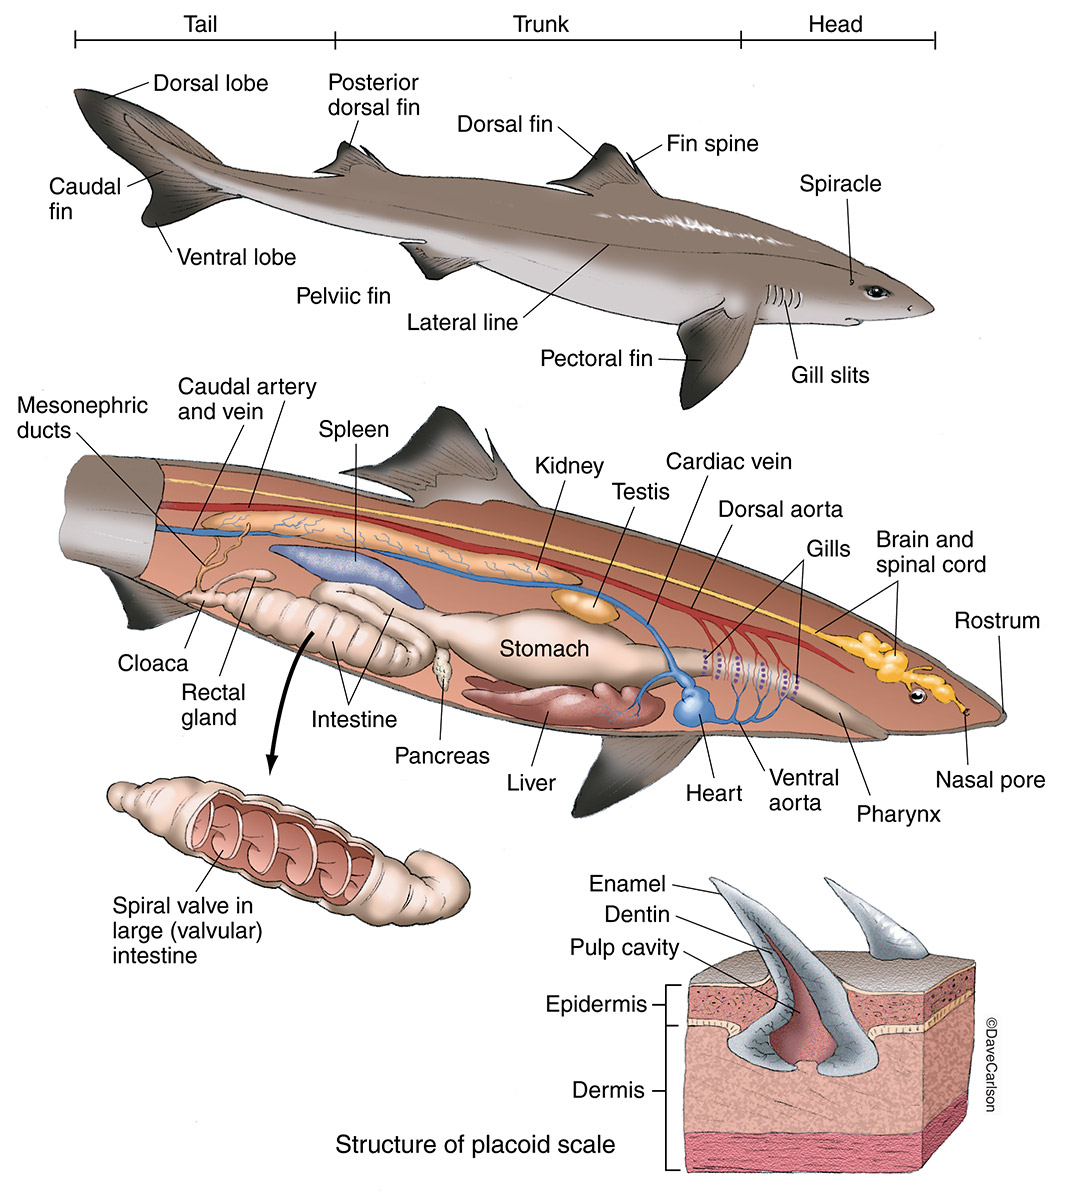 Shark Anatomy Dogfish Carlson Stock Art